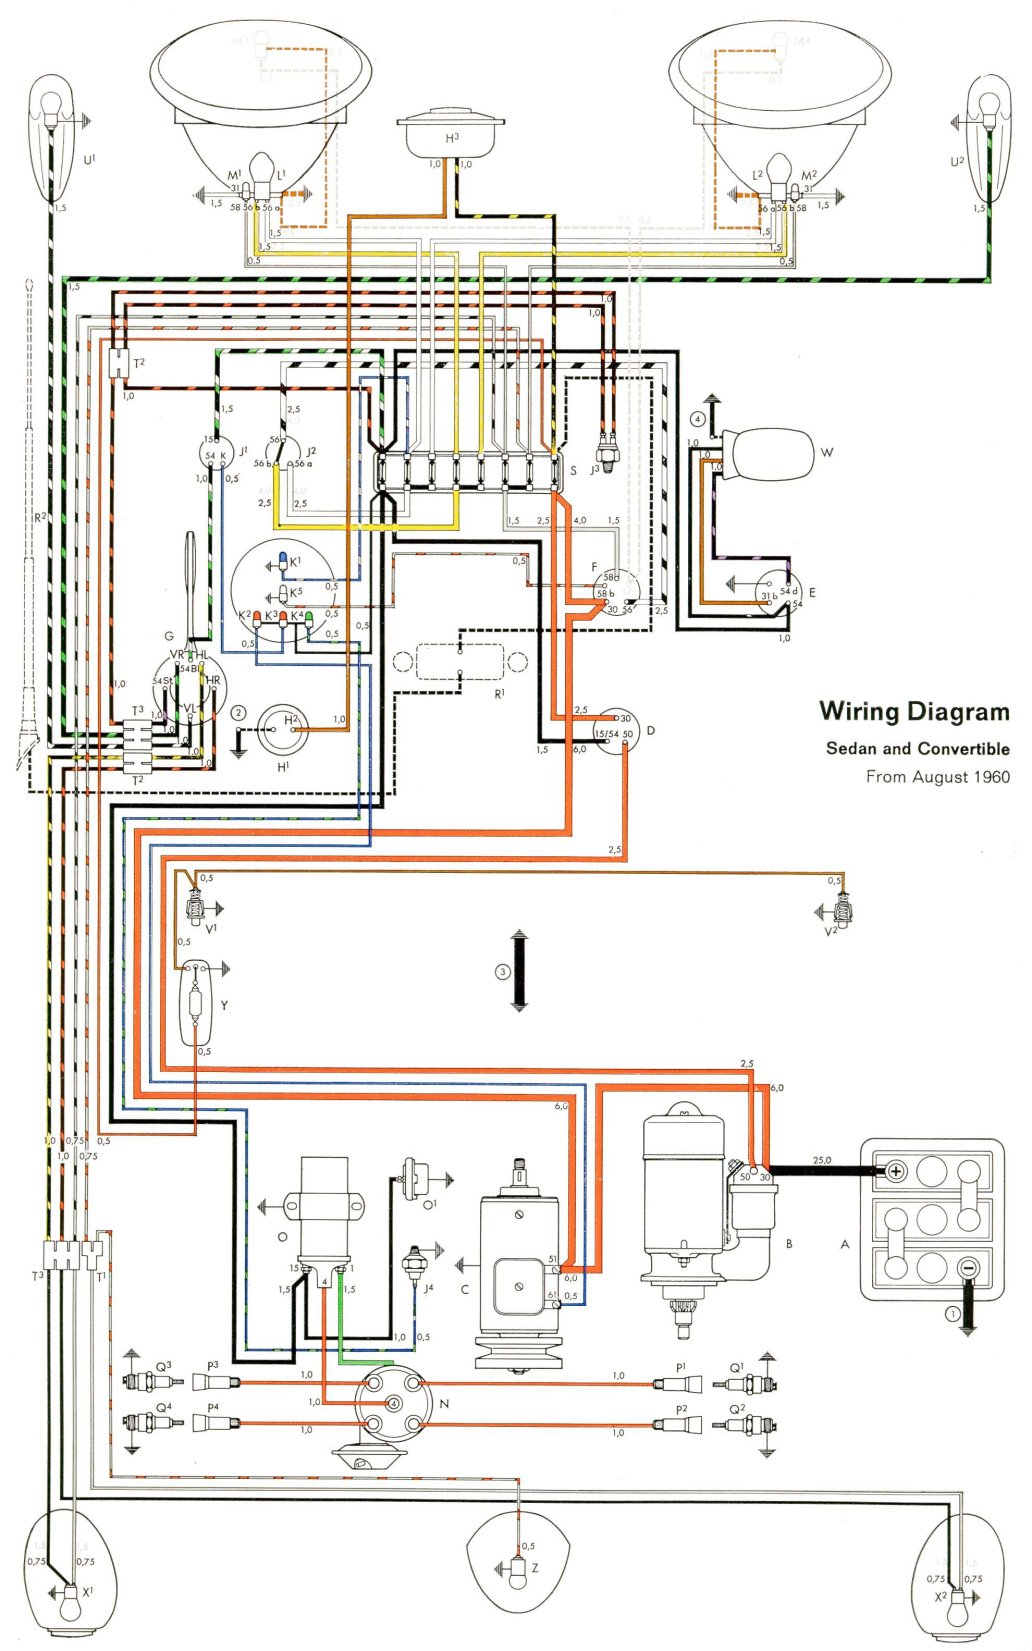 bug_61 1961 beetle wiring diagram thegoldenbug com volkswagen 2002 beetle wiring diagram at edmiracle.co